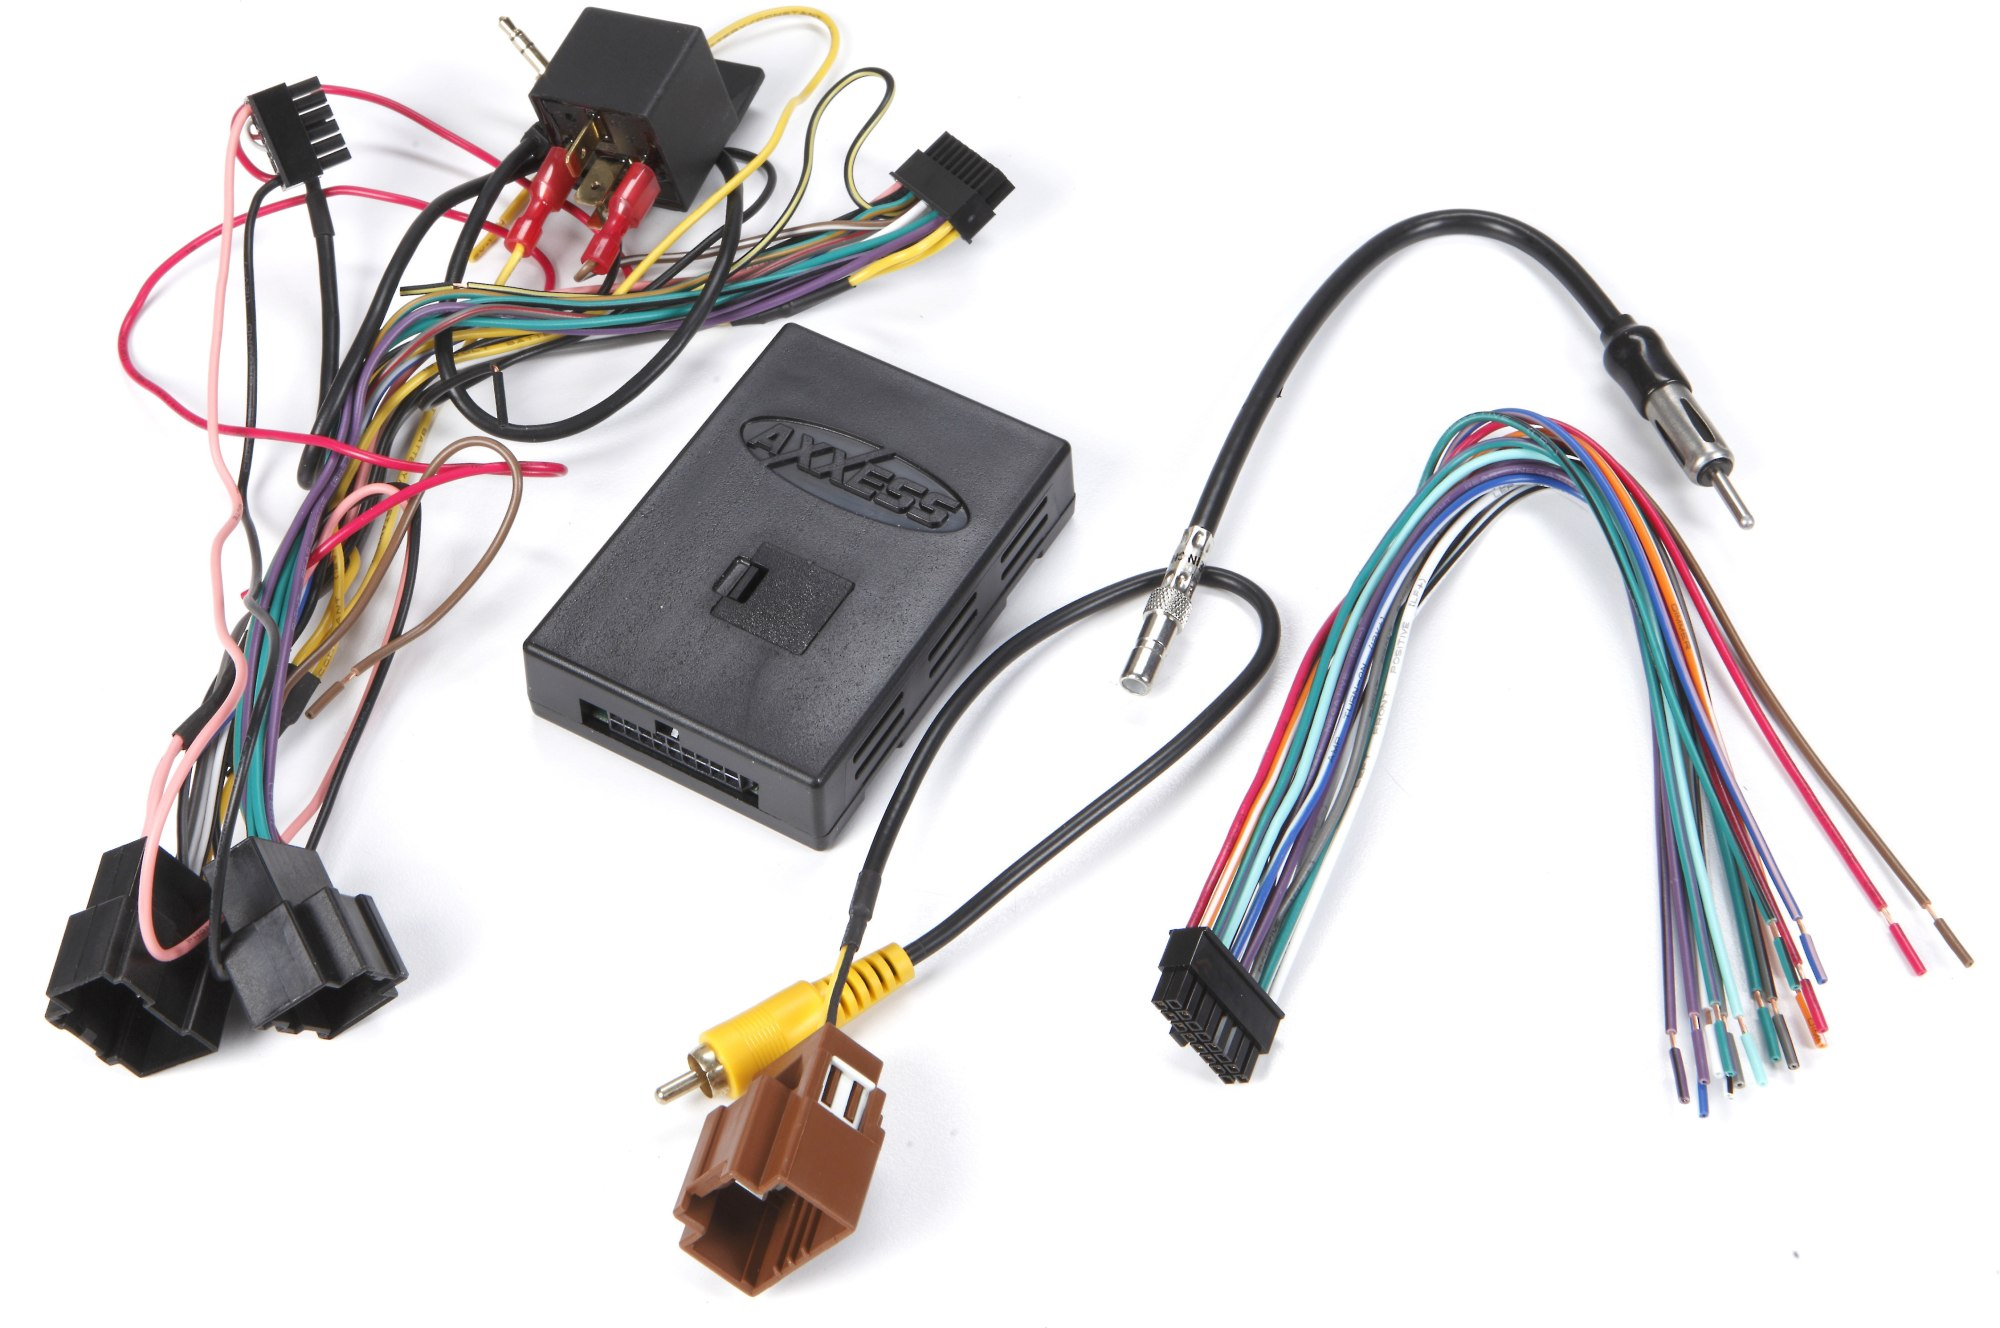 hight resolution of axxess gmos lan 02 wiring interface connect a new car stereo and retain factory amp onstar bluetooth backup cam and warning chimes in select 2006 up gm